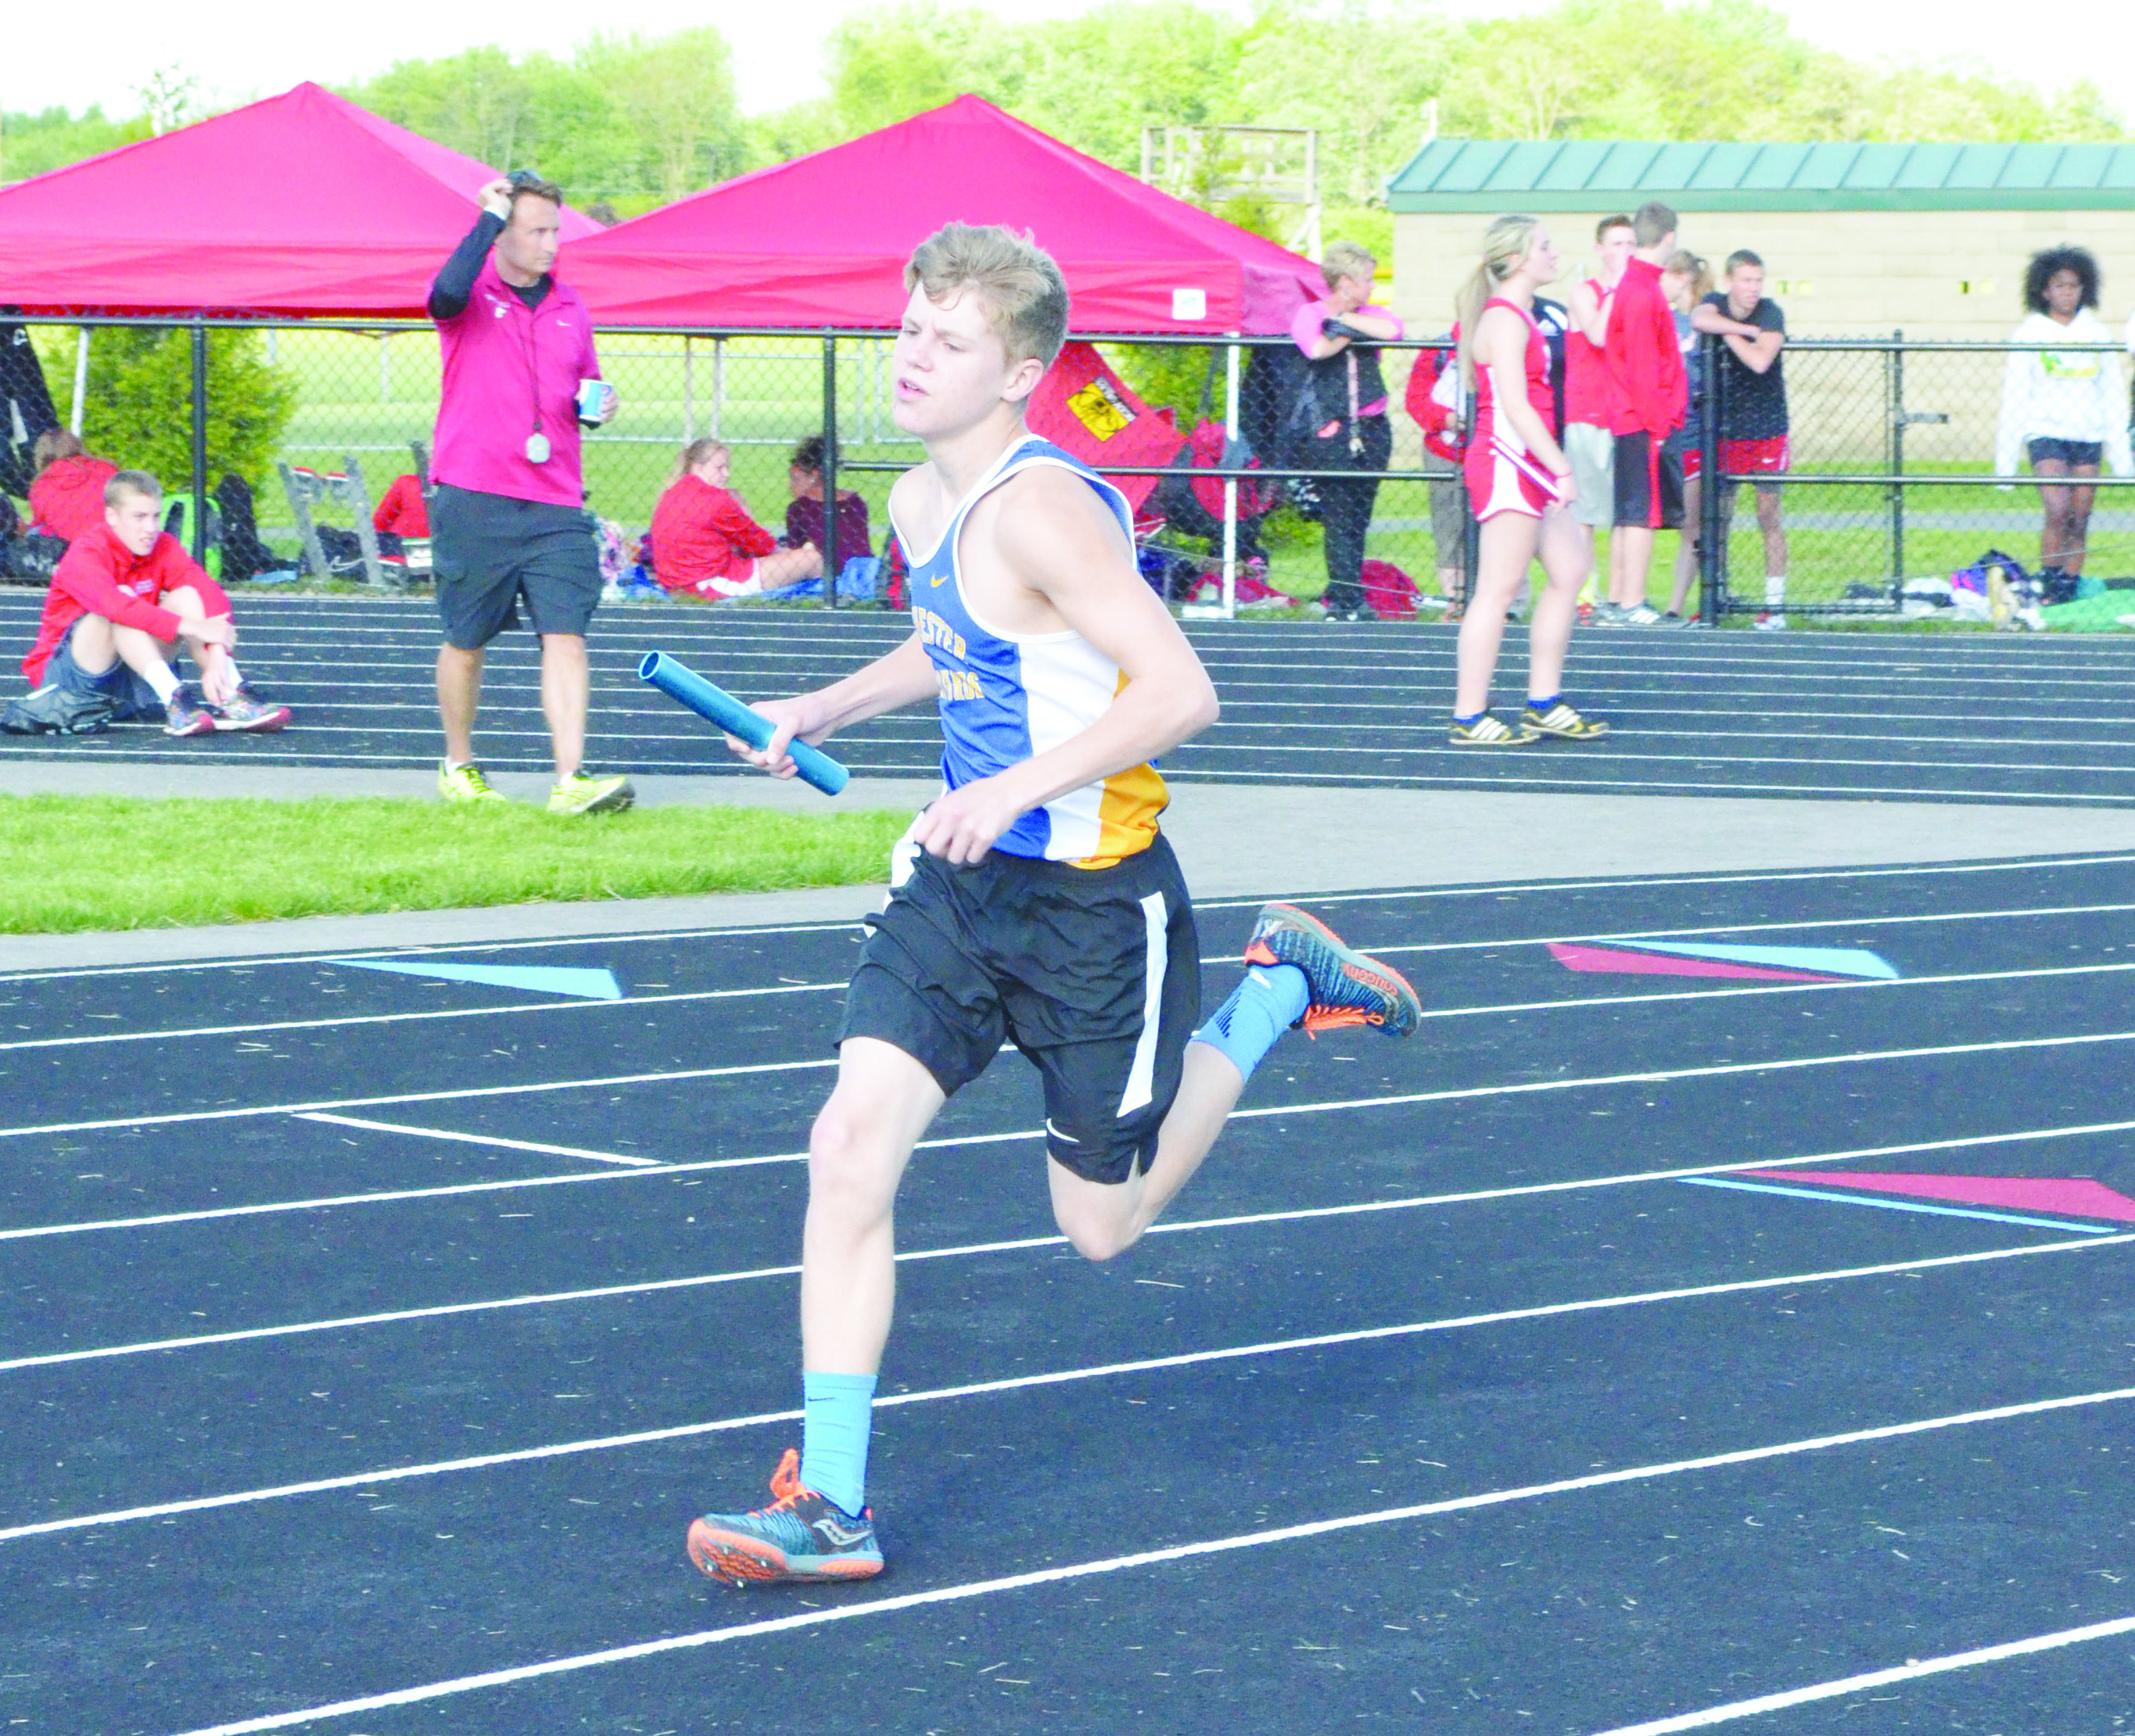 Manchester sophomore Ethan Pennywitt placed third in the Boys 3200 Meter Run and was part of the Greyhounds' 4 x 800 relay foursome that placed second in competition at the 2016 SHAC meet.  Photo by Wade Linville.